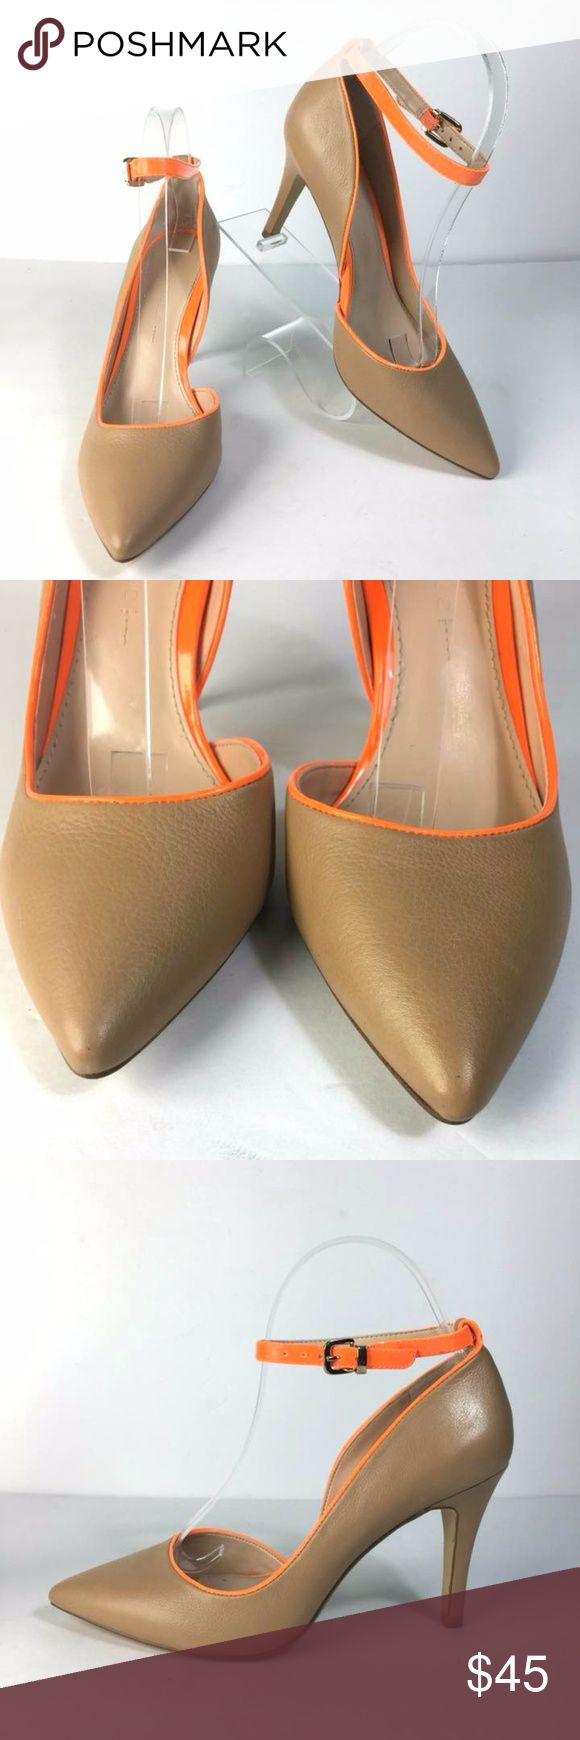 """BANANA REPUBLIC Tan and Neon Orange Strappy Heels Measurements  *Measurements are approximate and for reference only*  10"""" Long, 3"""" Wide, 7"""" Tall Heel:  3.5""""  Please note that slight color difference should be acceptable due to the light and screen. Check measurements to insure fit.  BIN1-008 Banana Republic Shoes Heels"""